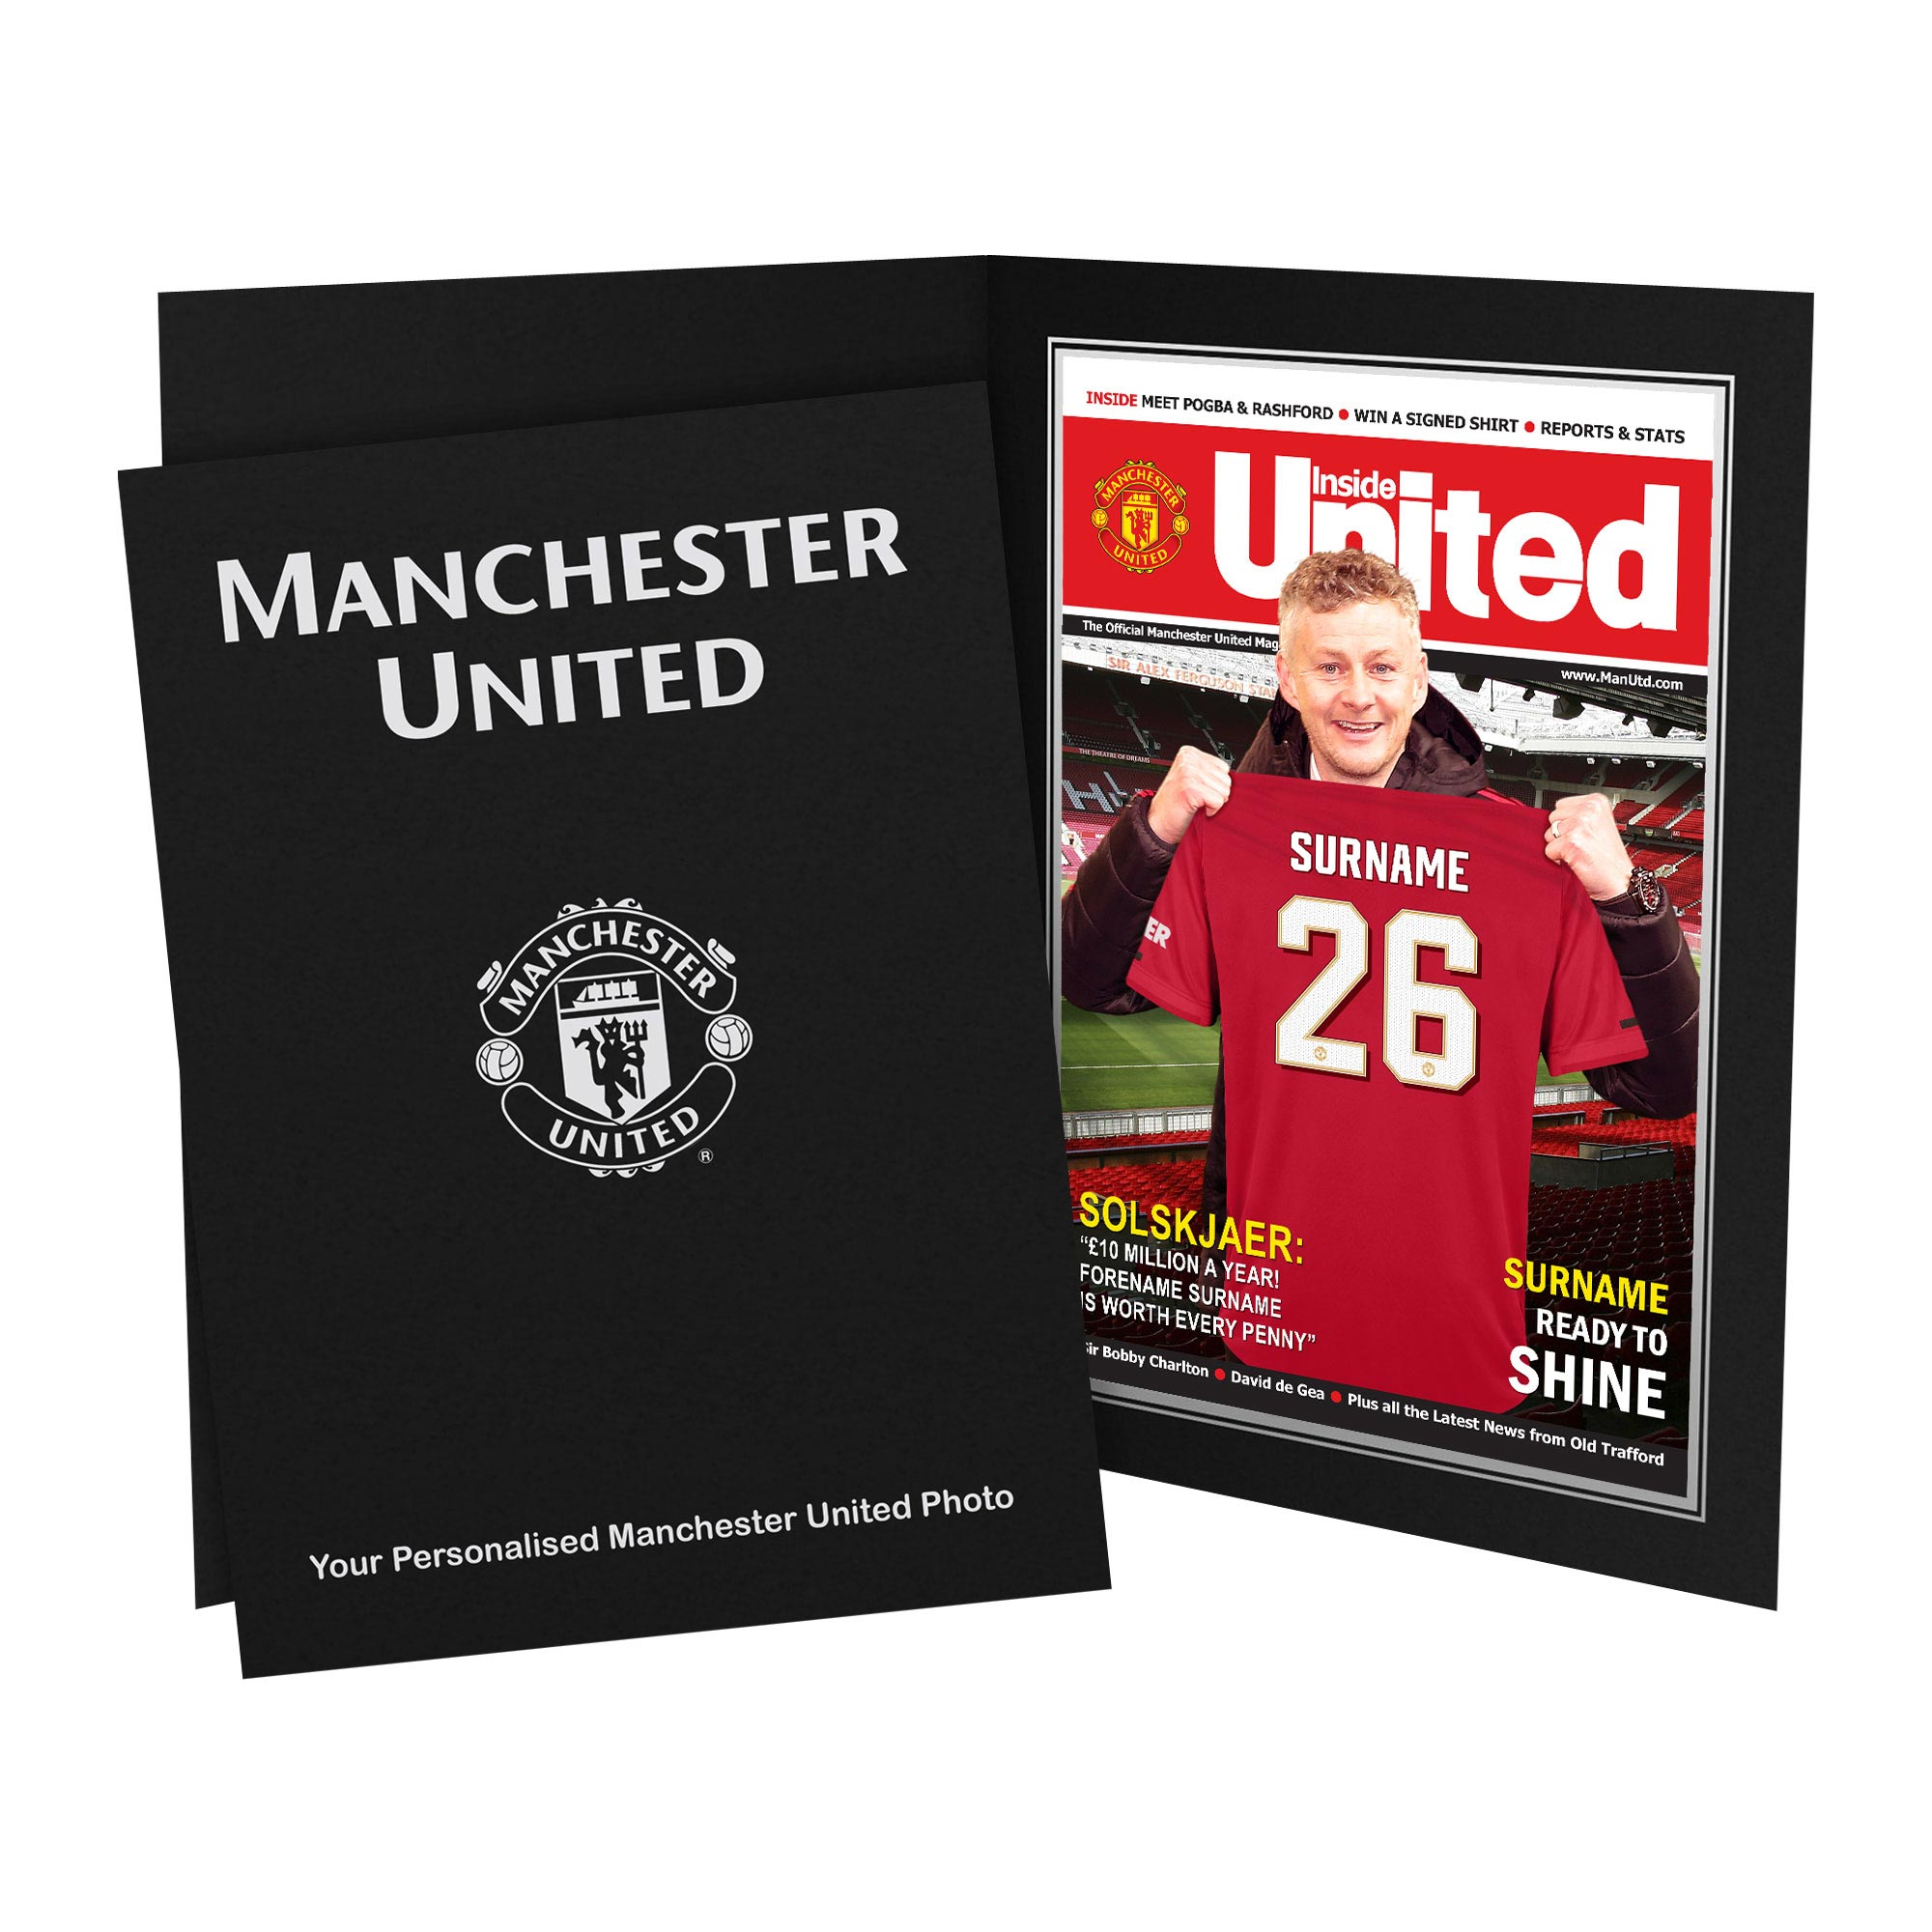 Manchester United Personalised Magazine Cover in Presentation Folder